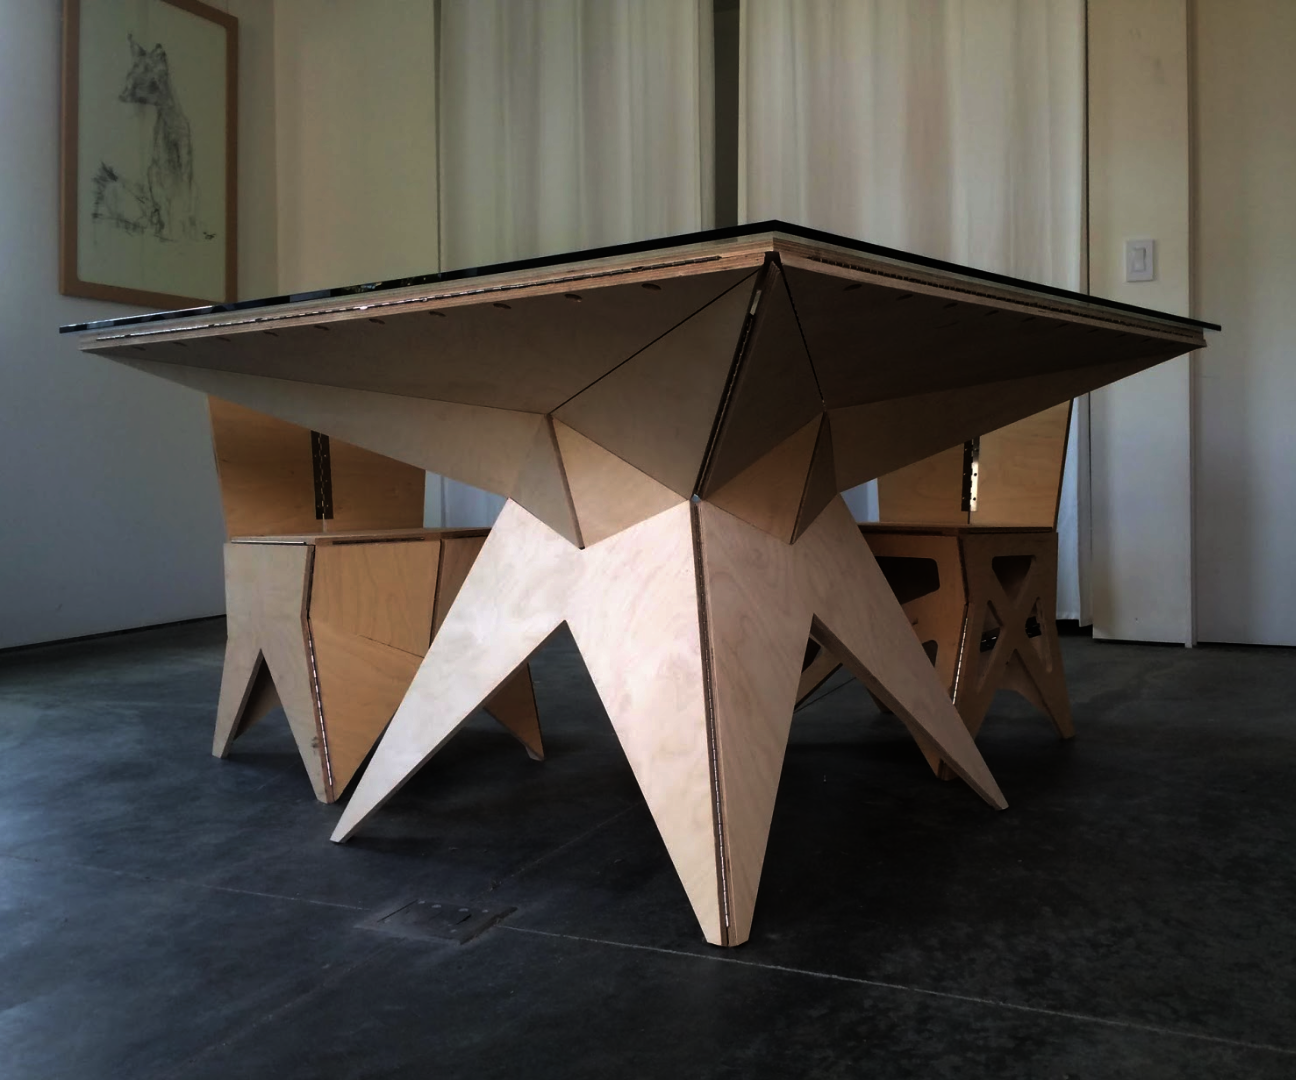 Origami Furniture Case Study: A Table